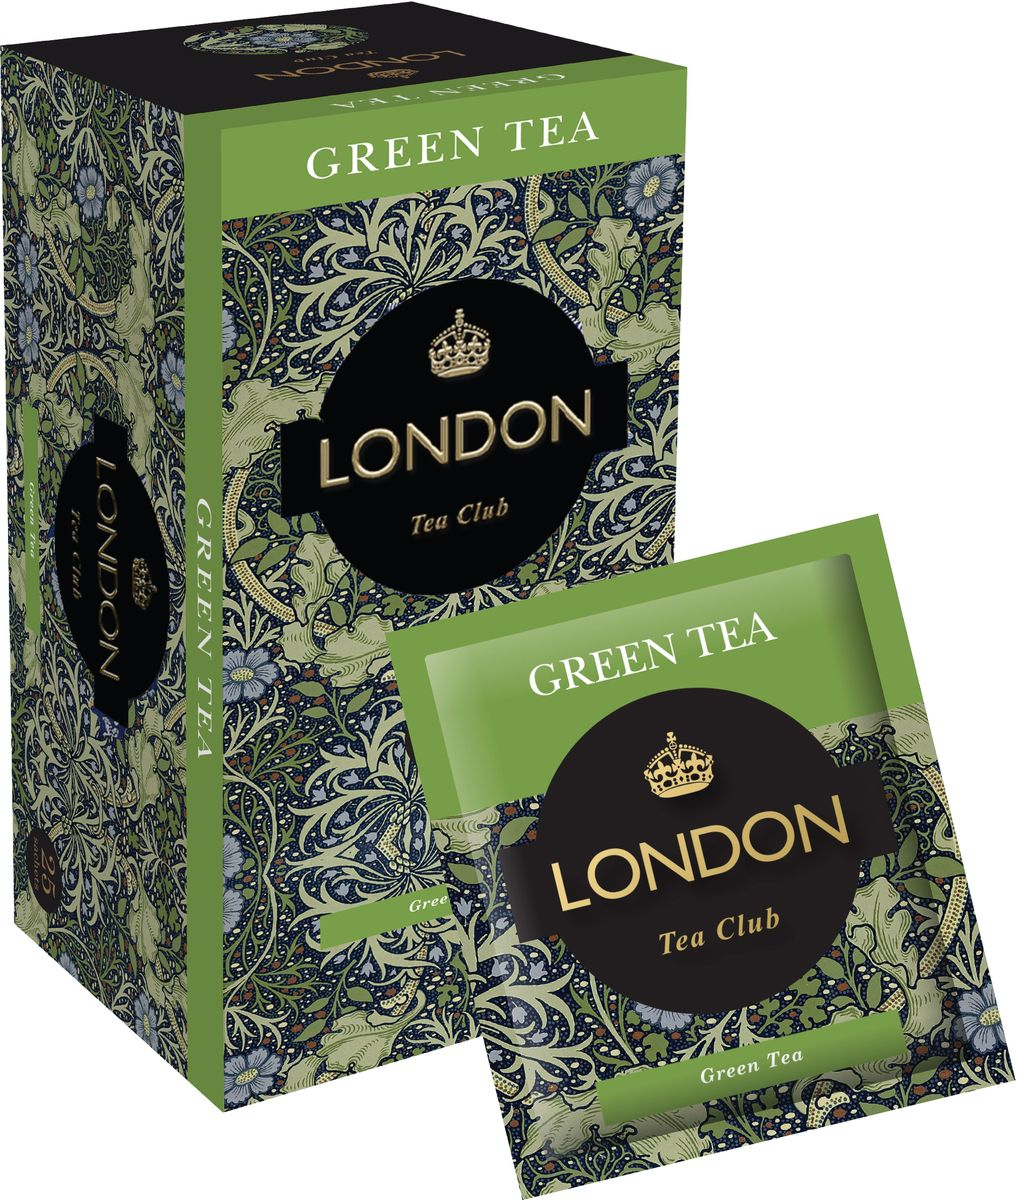 London Tea Club Green Tea в пакетиках, 25 шт anxi maoxie tieguanyin tea chinese oolong natural organic tie guan yin зеленый чай высшего качества чай